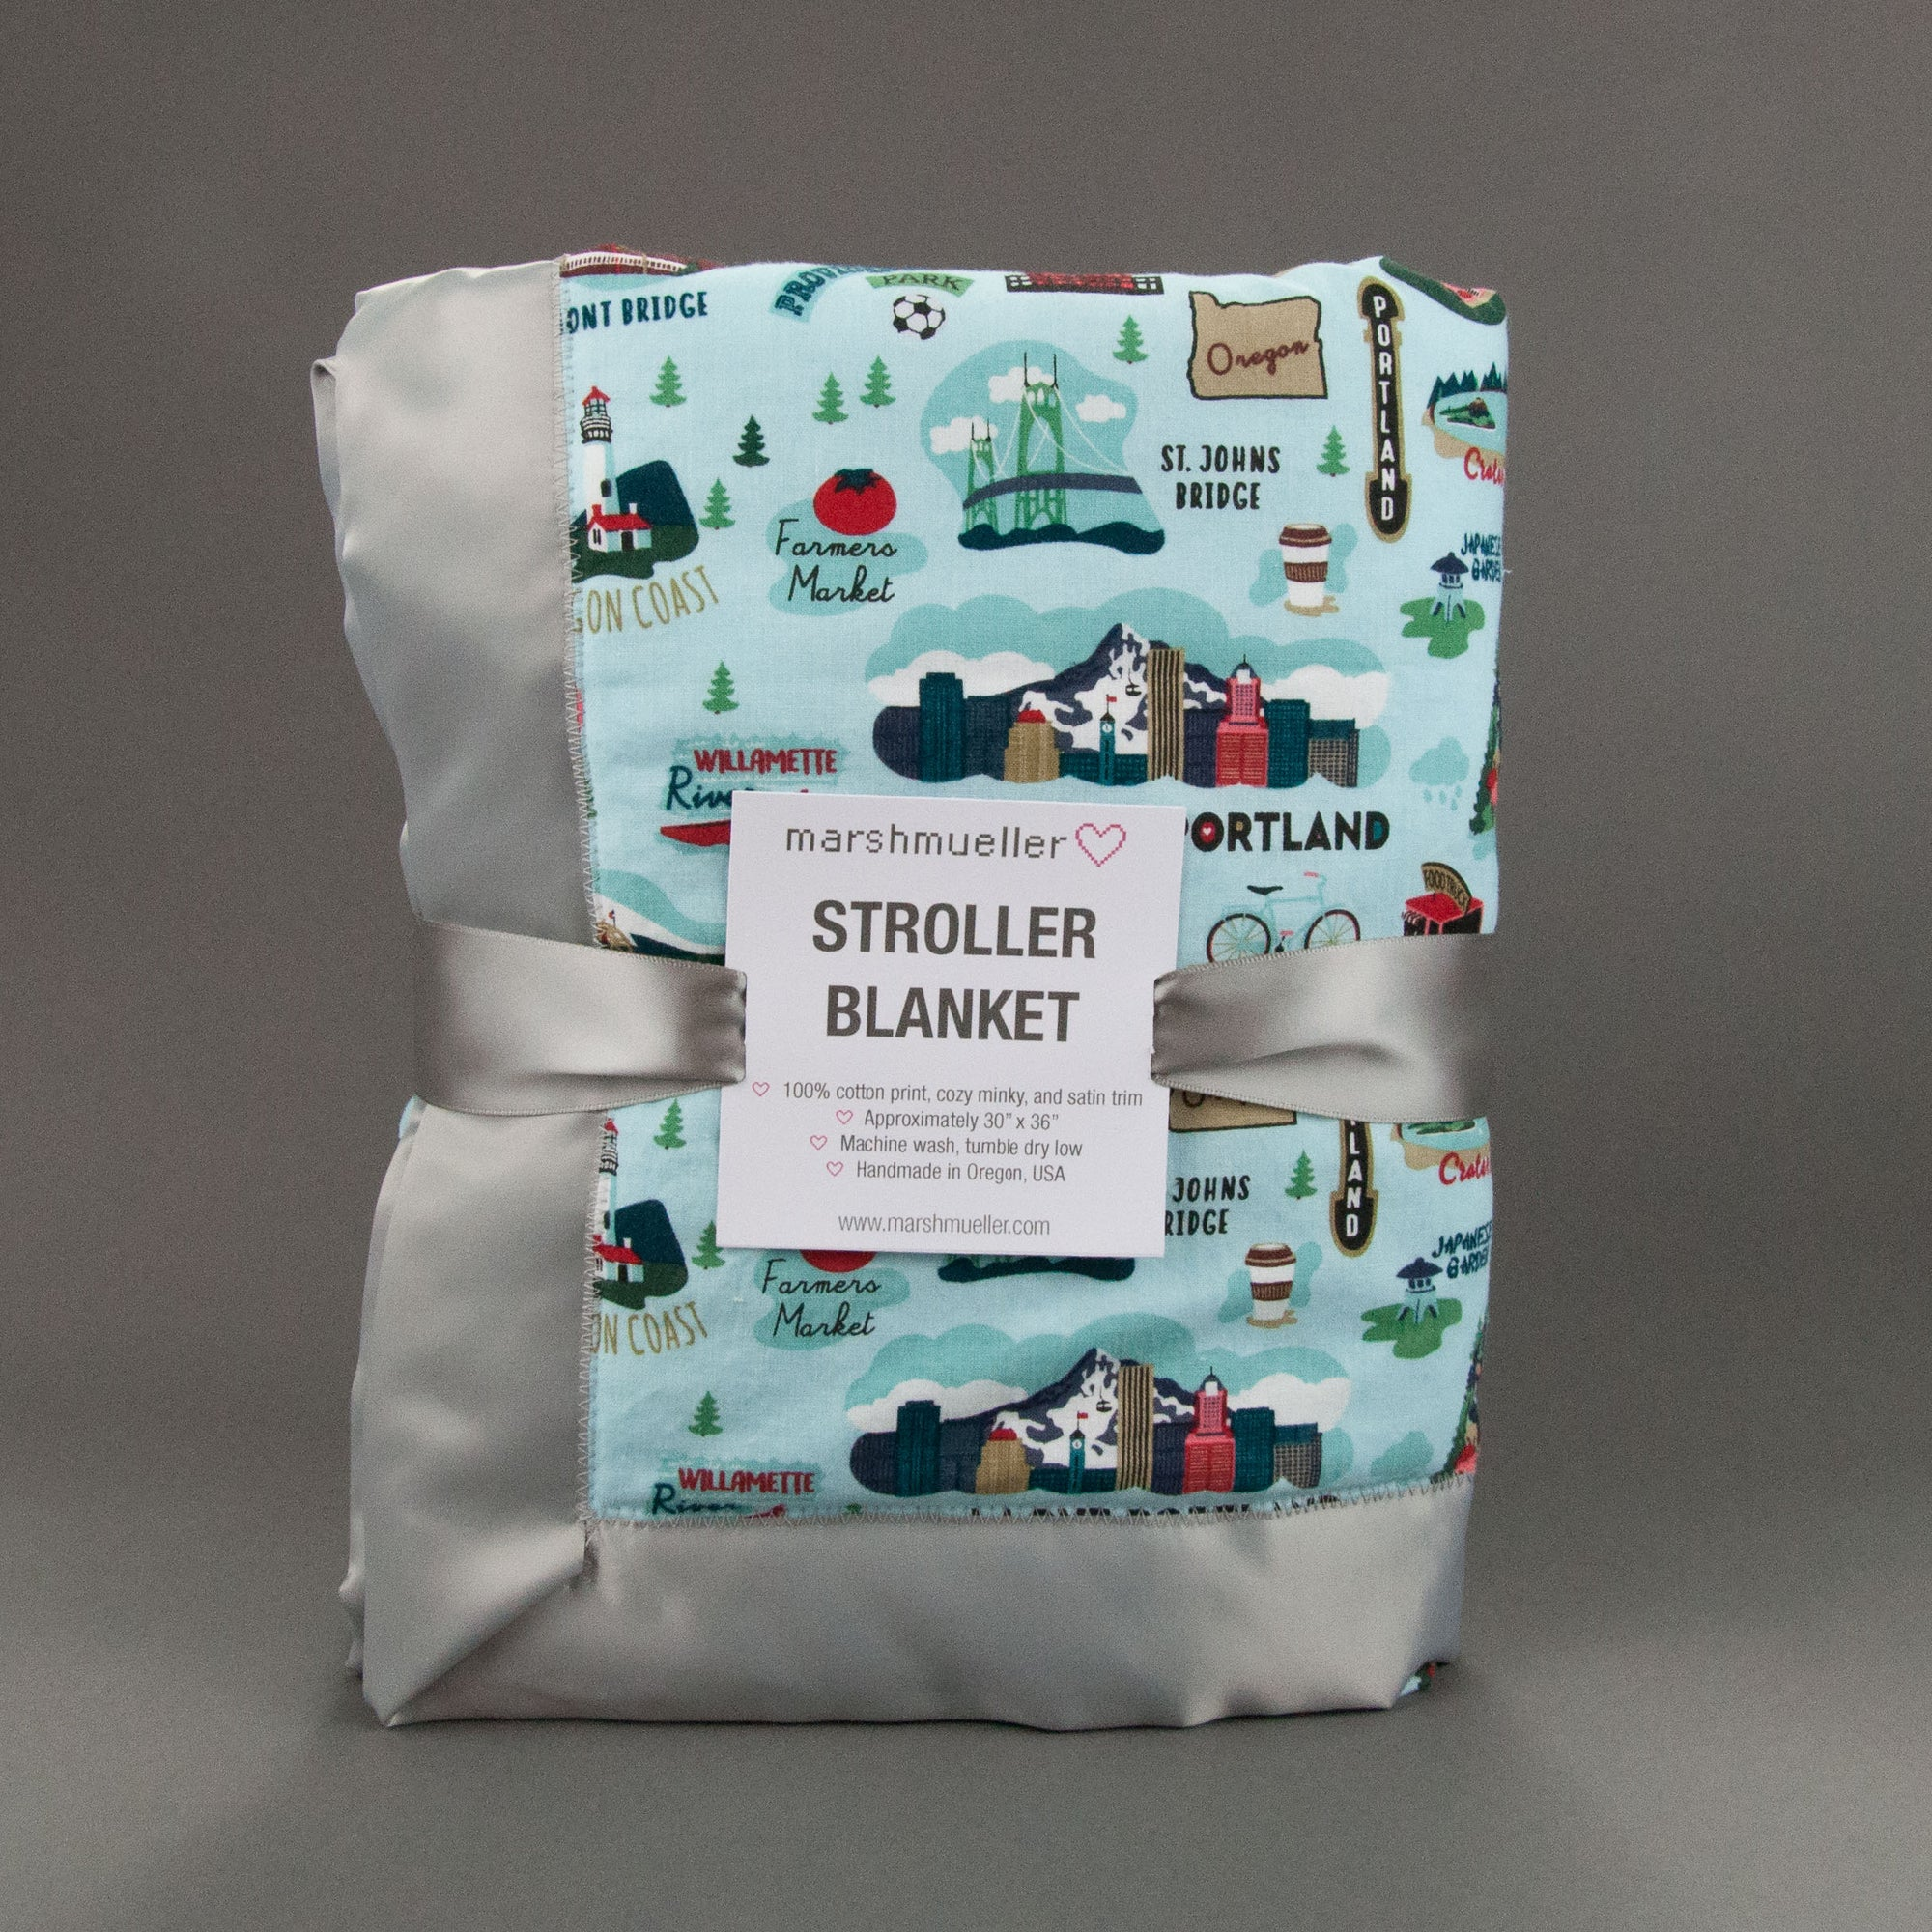 "Marshmueller Stroller blanket, folded into quarters, with blue Oregon print fabric and grey satin blanket binding. It is packaged with a grey satin ribbon and tag that says ""Stroller Blanket."" Blanket is standing up on short end on a grey background."